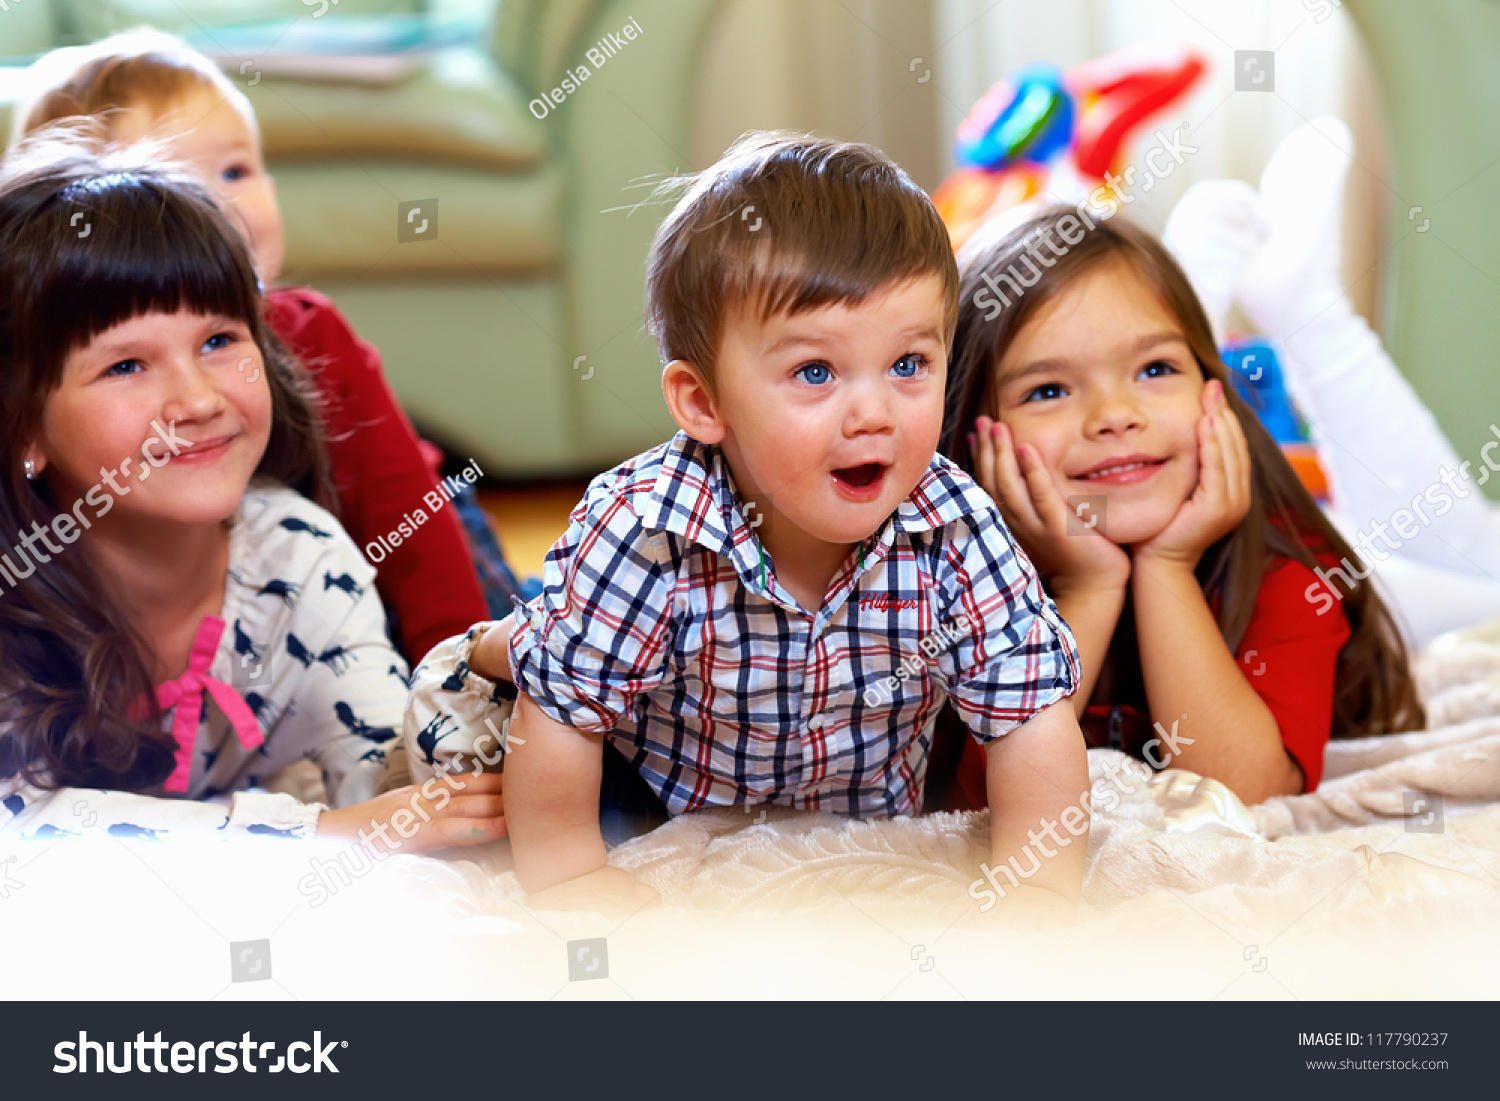 managing children on watching television Watch important speeches and event highlights, such as hillary's official campaign launch speech on roosevelt island, new york stay up to date with the campaign ads and video everyone will be.